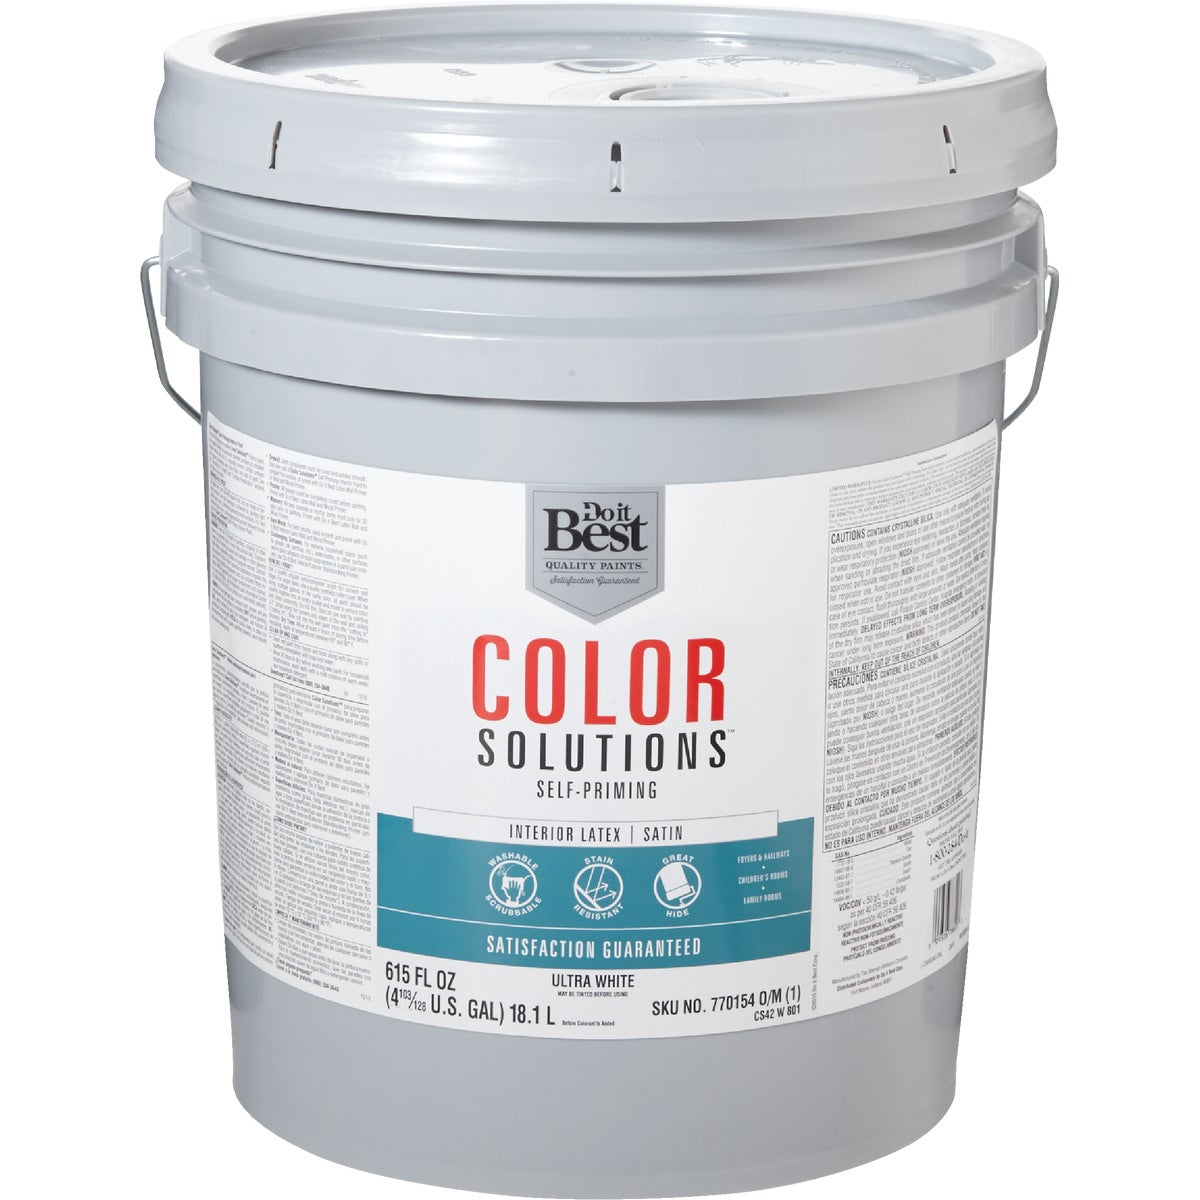 INT SAT ULTRA WHT PAINT - CS42W0801-20 by Do it Best